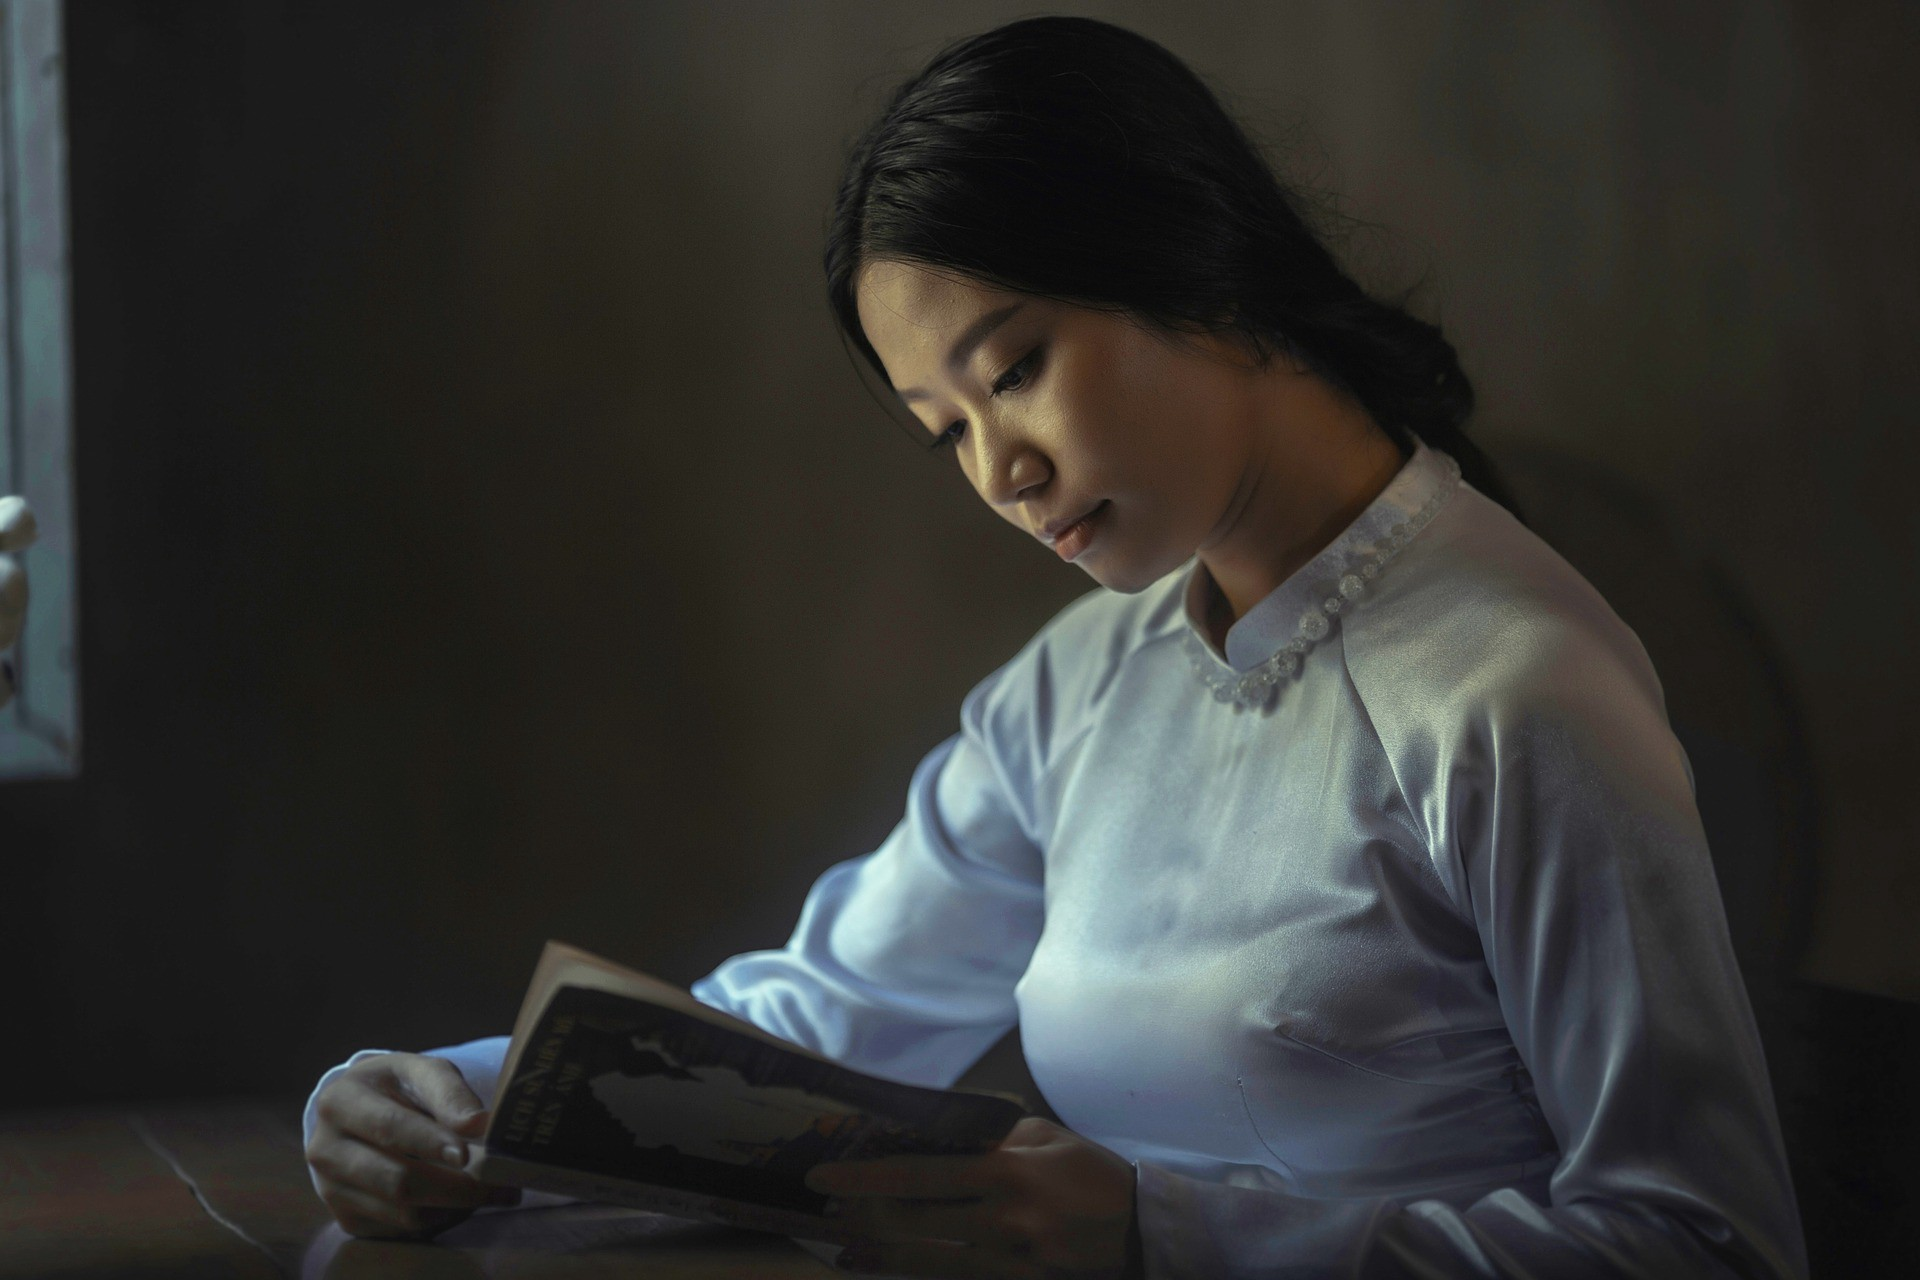 Young Asian woman in white blouse reads a book indoors.